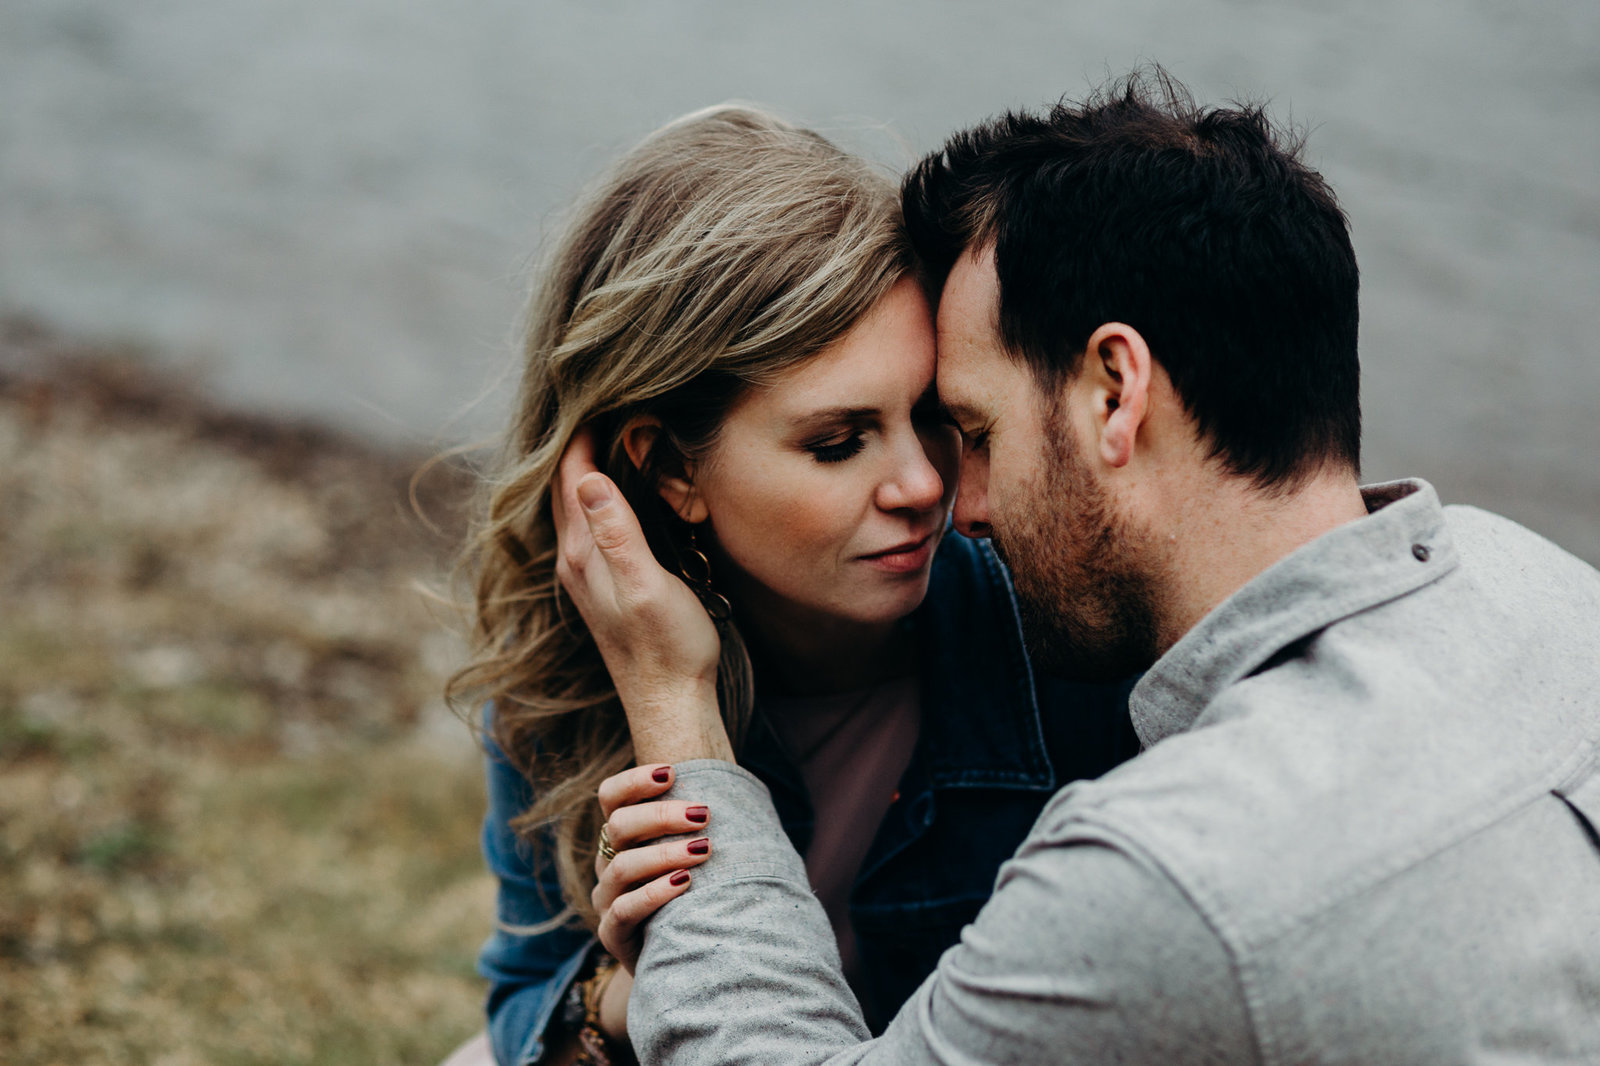 Engagement session during golden hour in Seattle, WA at Rattlesnake Lake